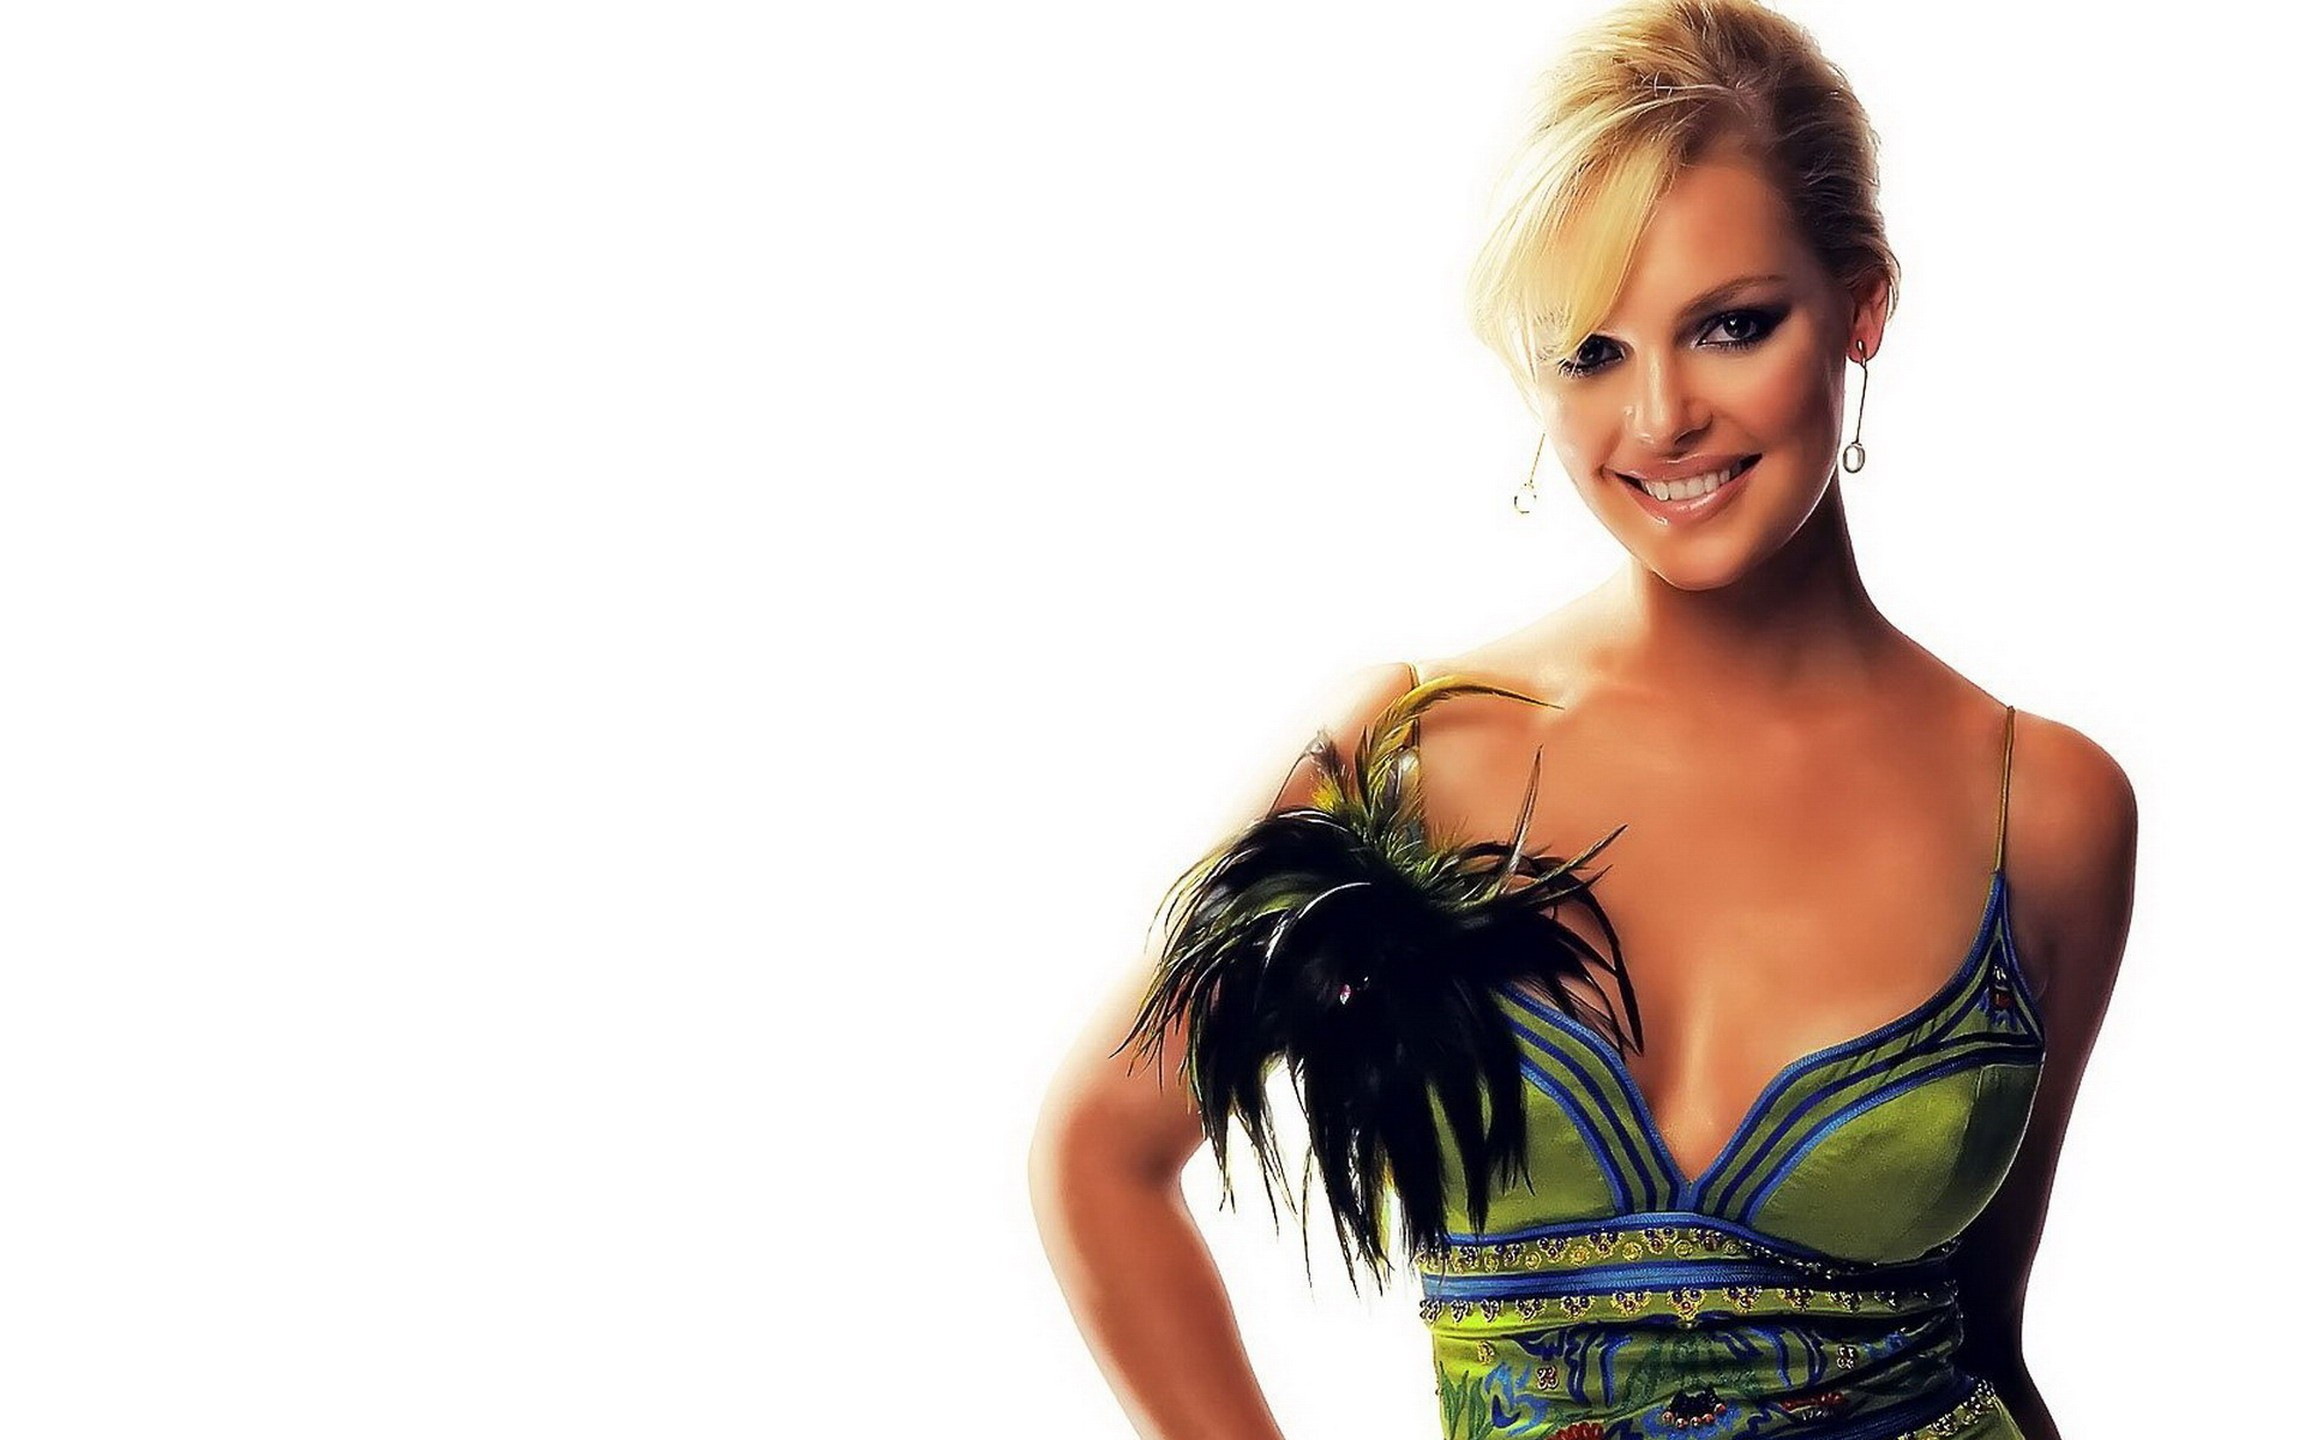 Dhoni Wallpaper With Quotes Katherine Heigl Sexy Images Popopics Com